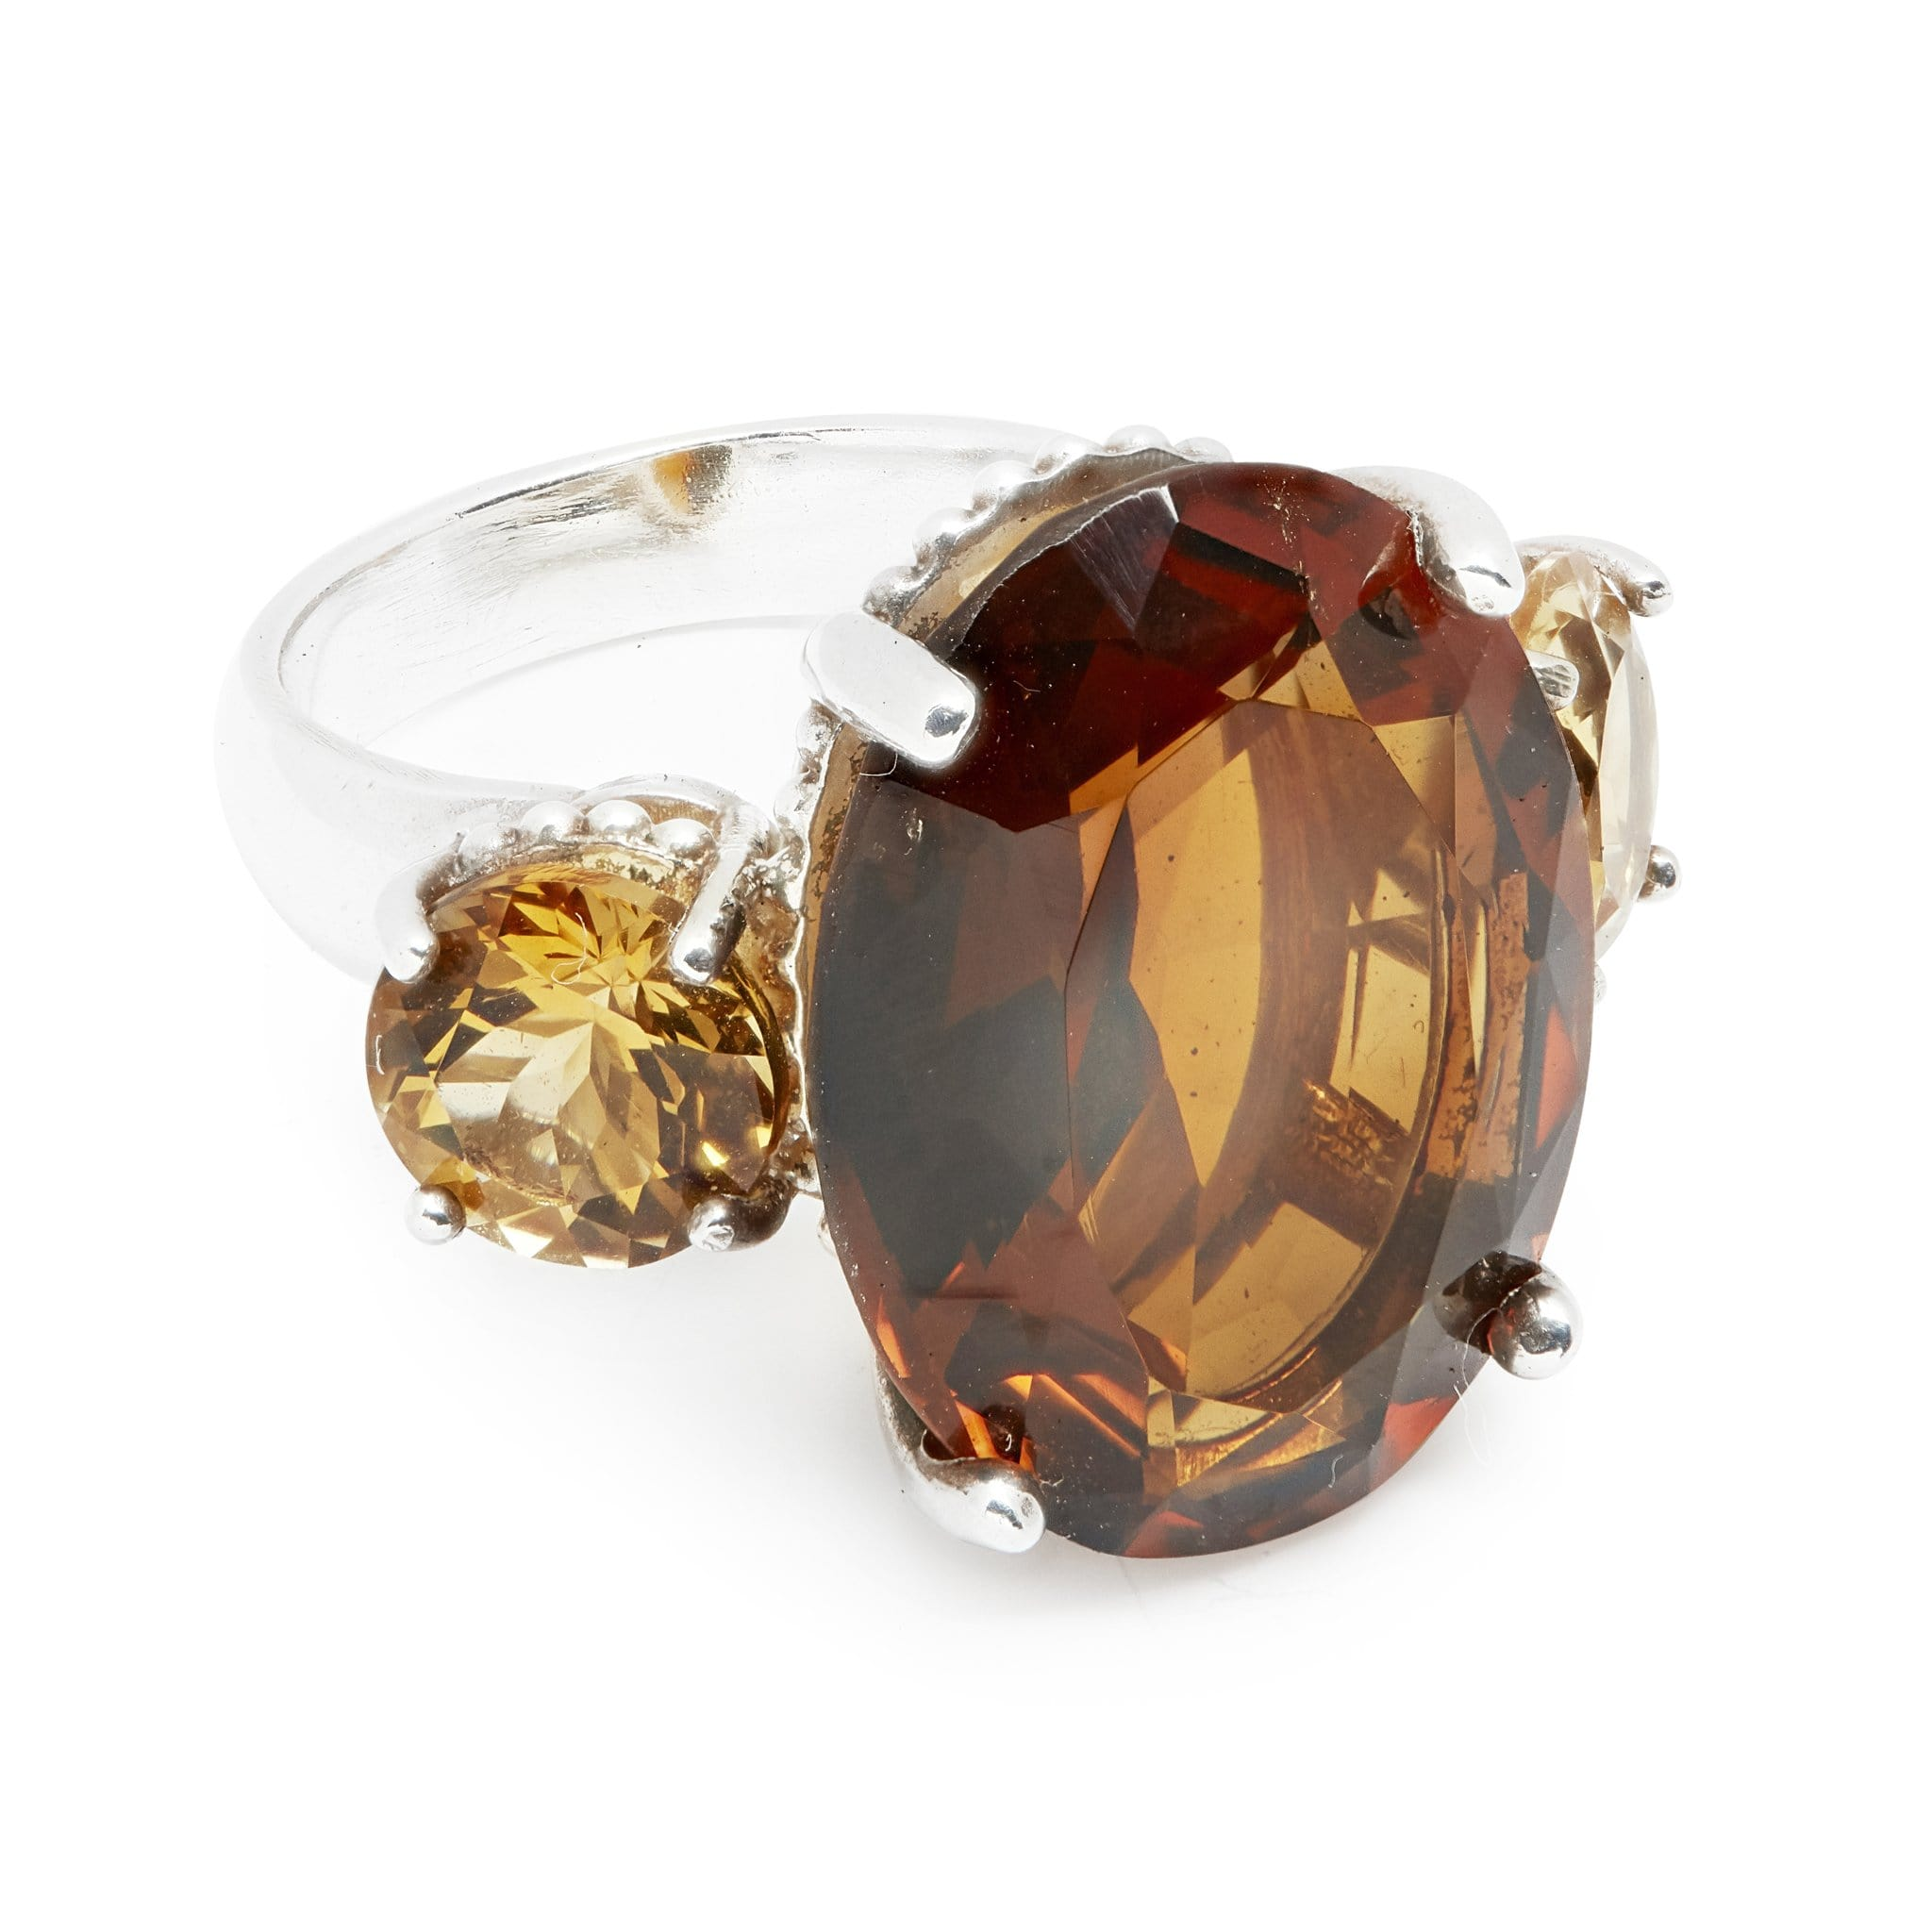 The Renaissance Statgement Ring in Smokey Quartz and Citrine